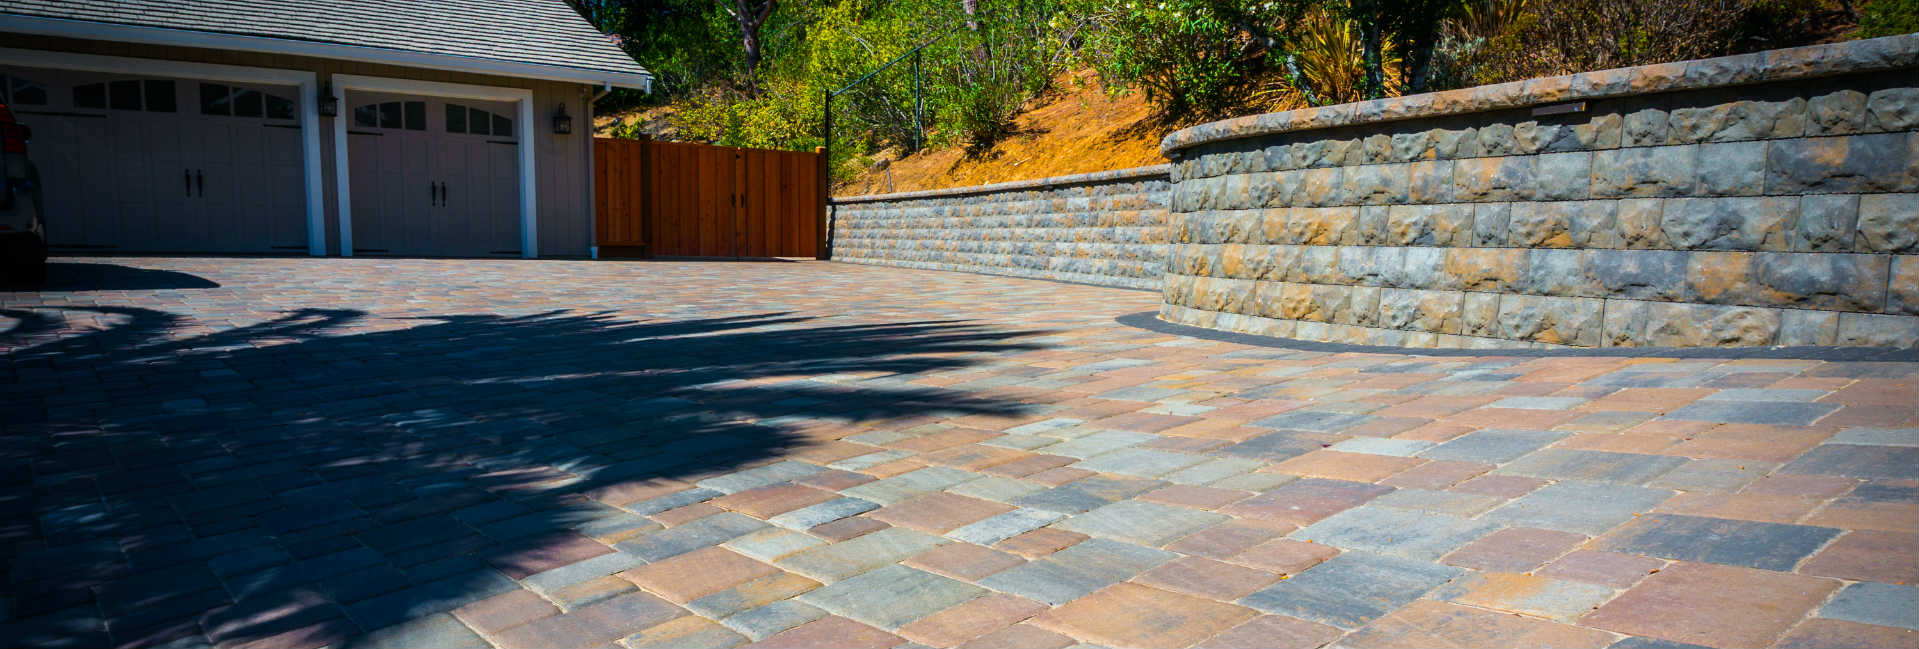 bay area paver driveways